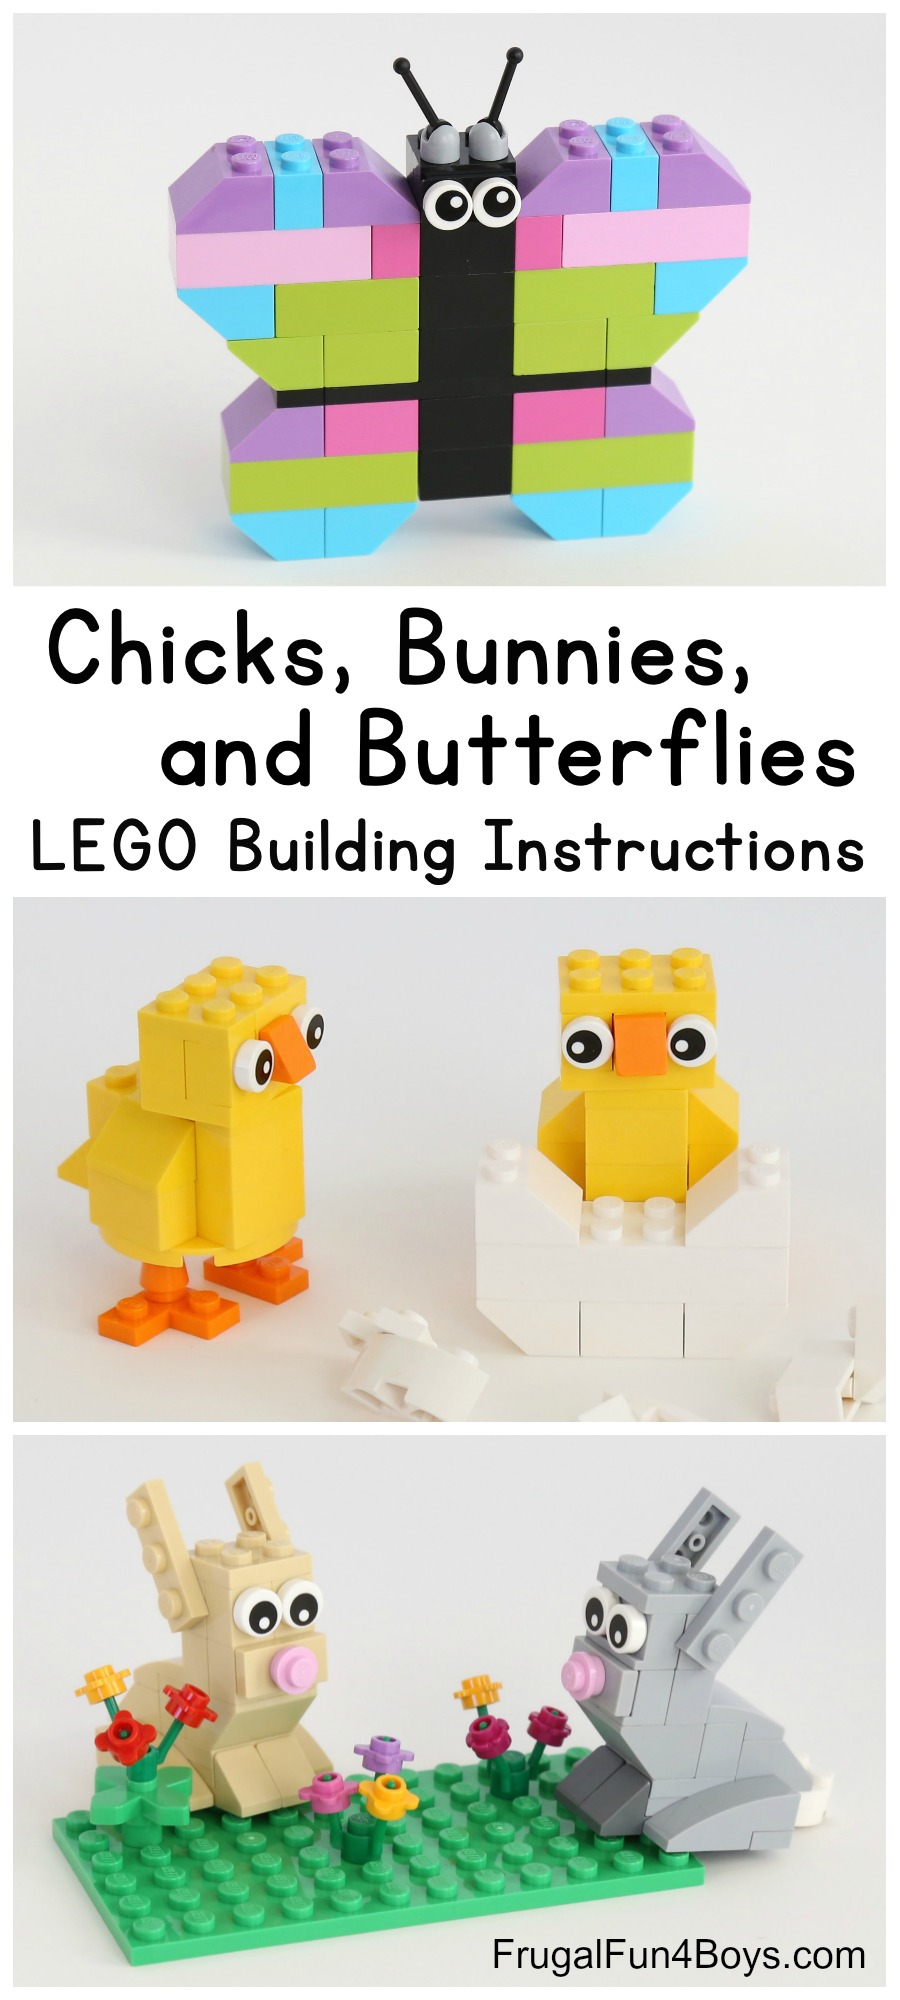 Spring Builds! How to Make Chicks, Bunnies, and Butterflies with LEGO Bricks - Frugal Fun For Boys and Girls